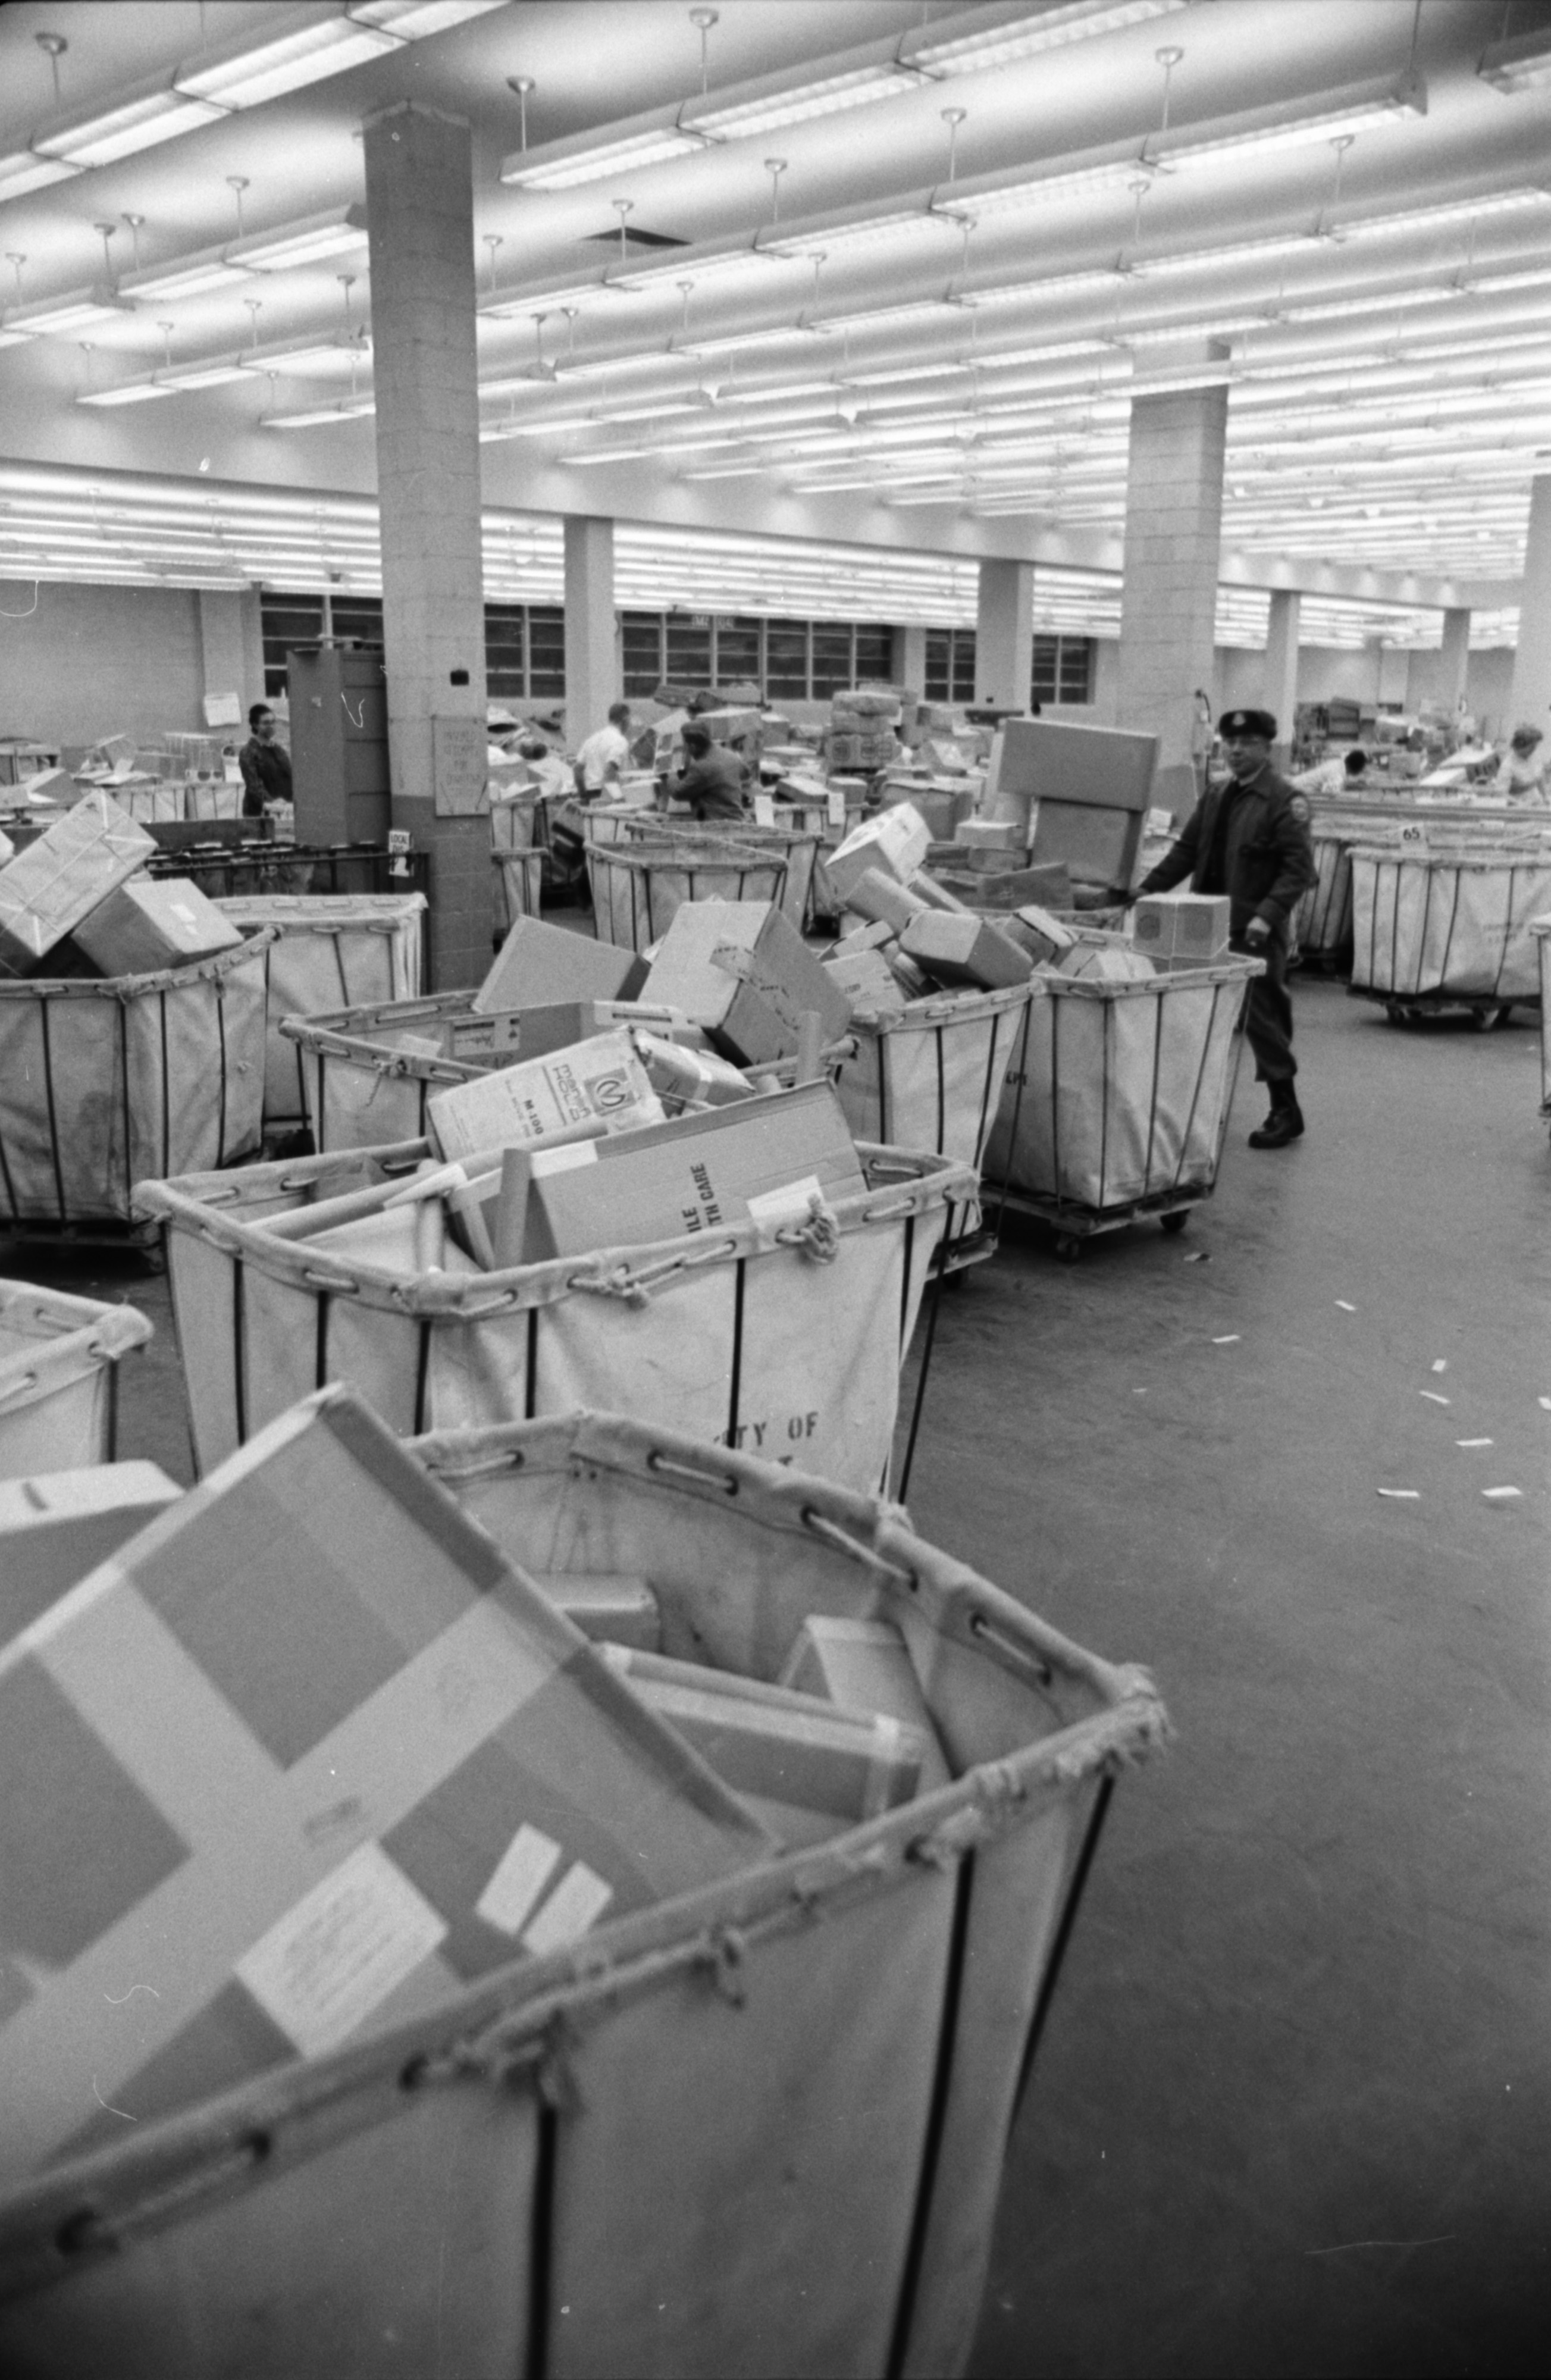 Hampers full of holiday mail at the W. Stadium Post Office, December 1966 image